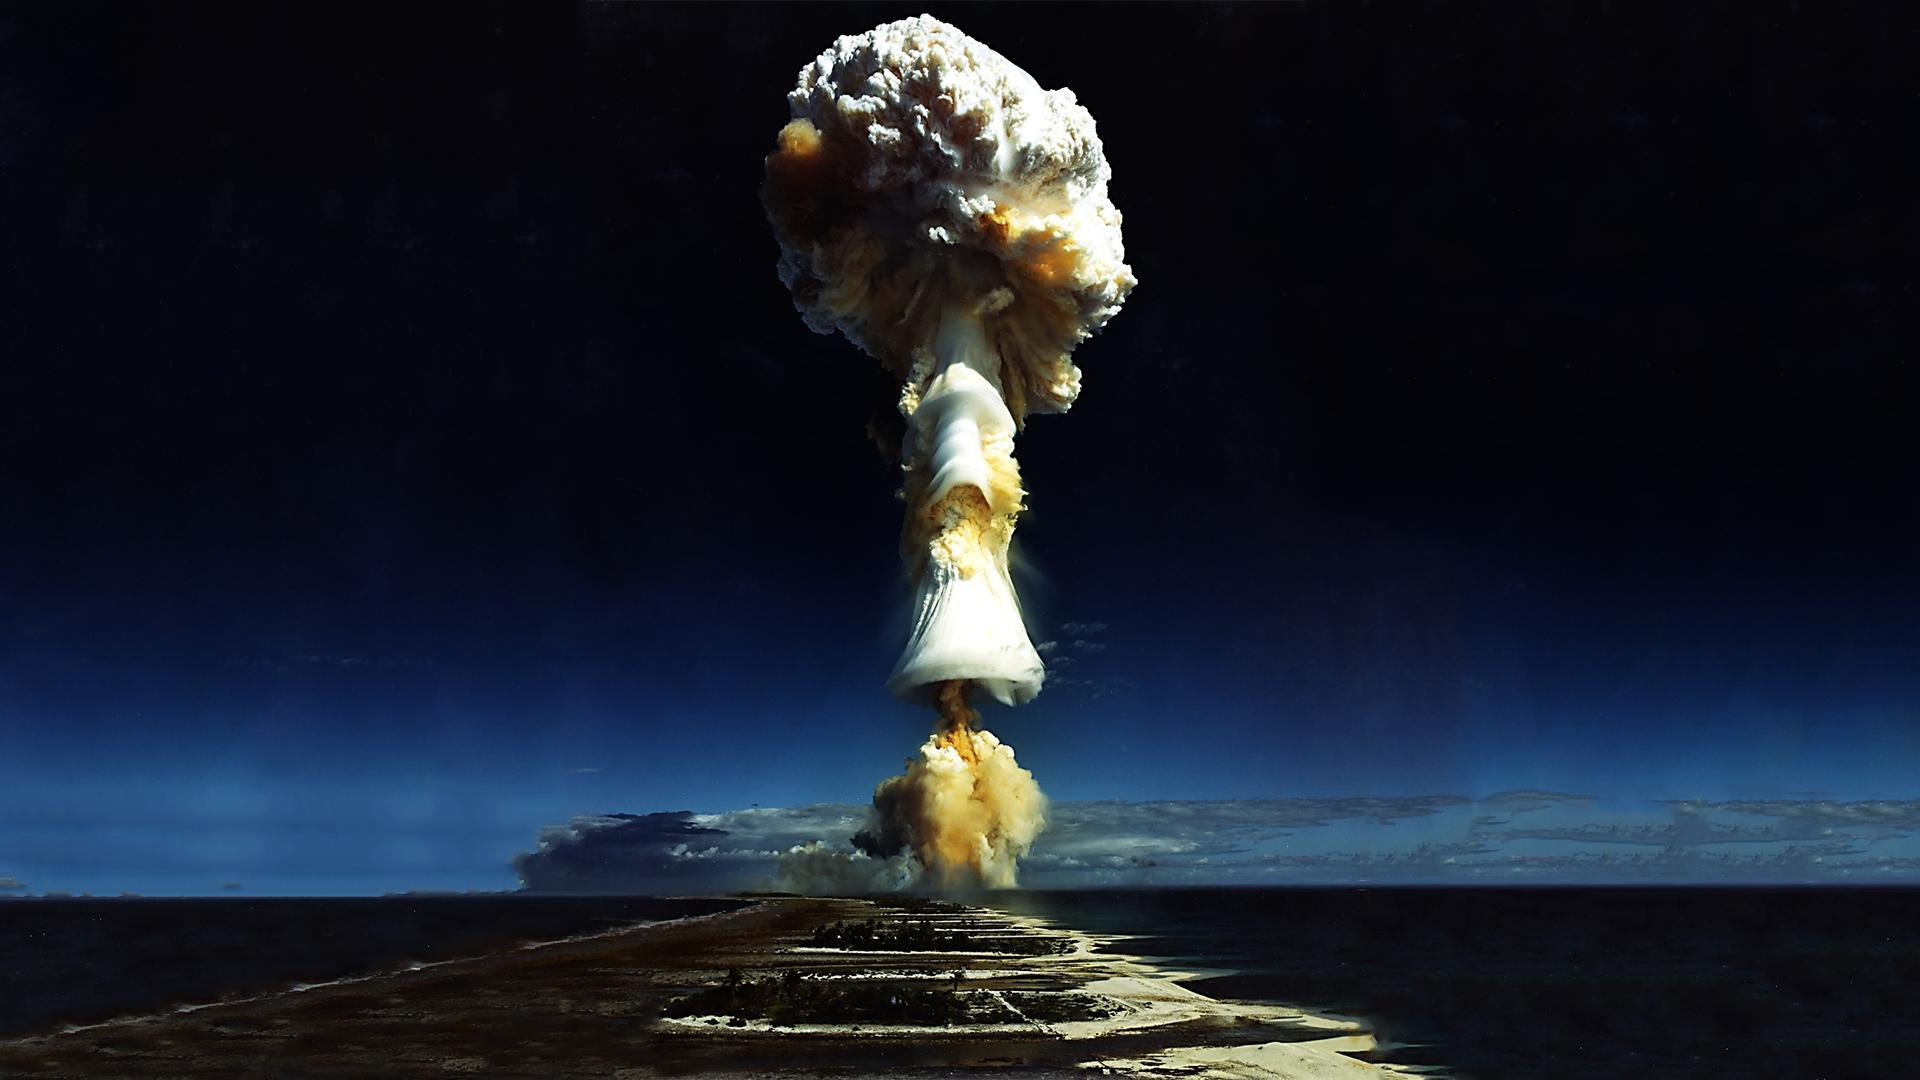 hd wallpapers atomic explosion - photo #43